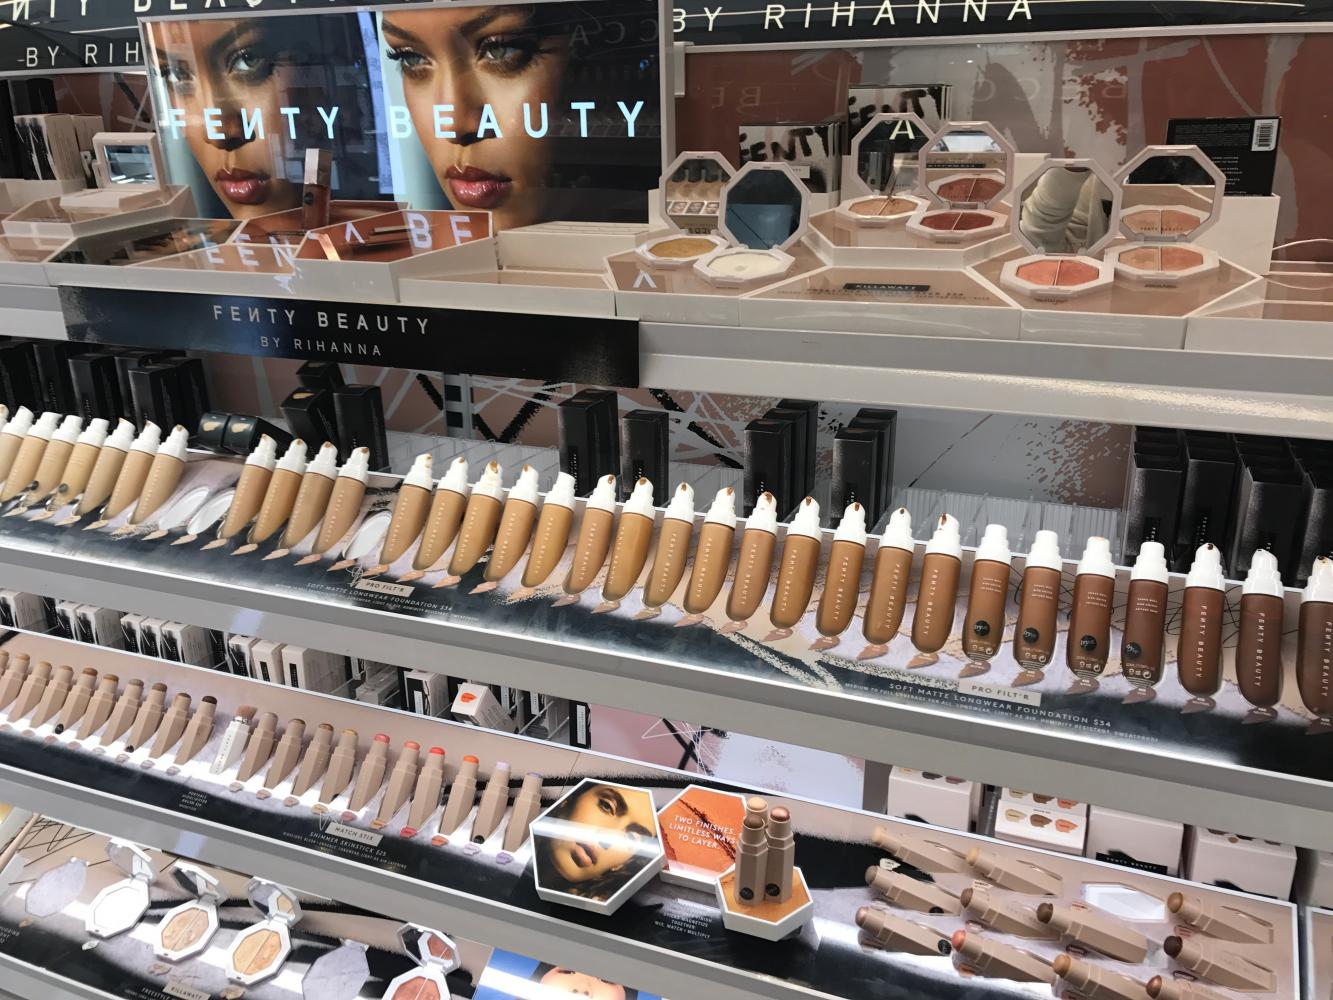 Fenty Beauty stands above the rest